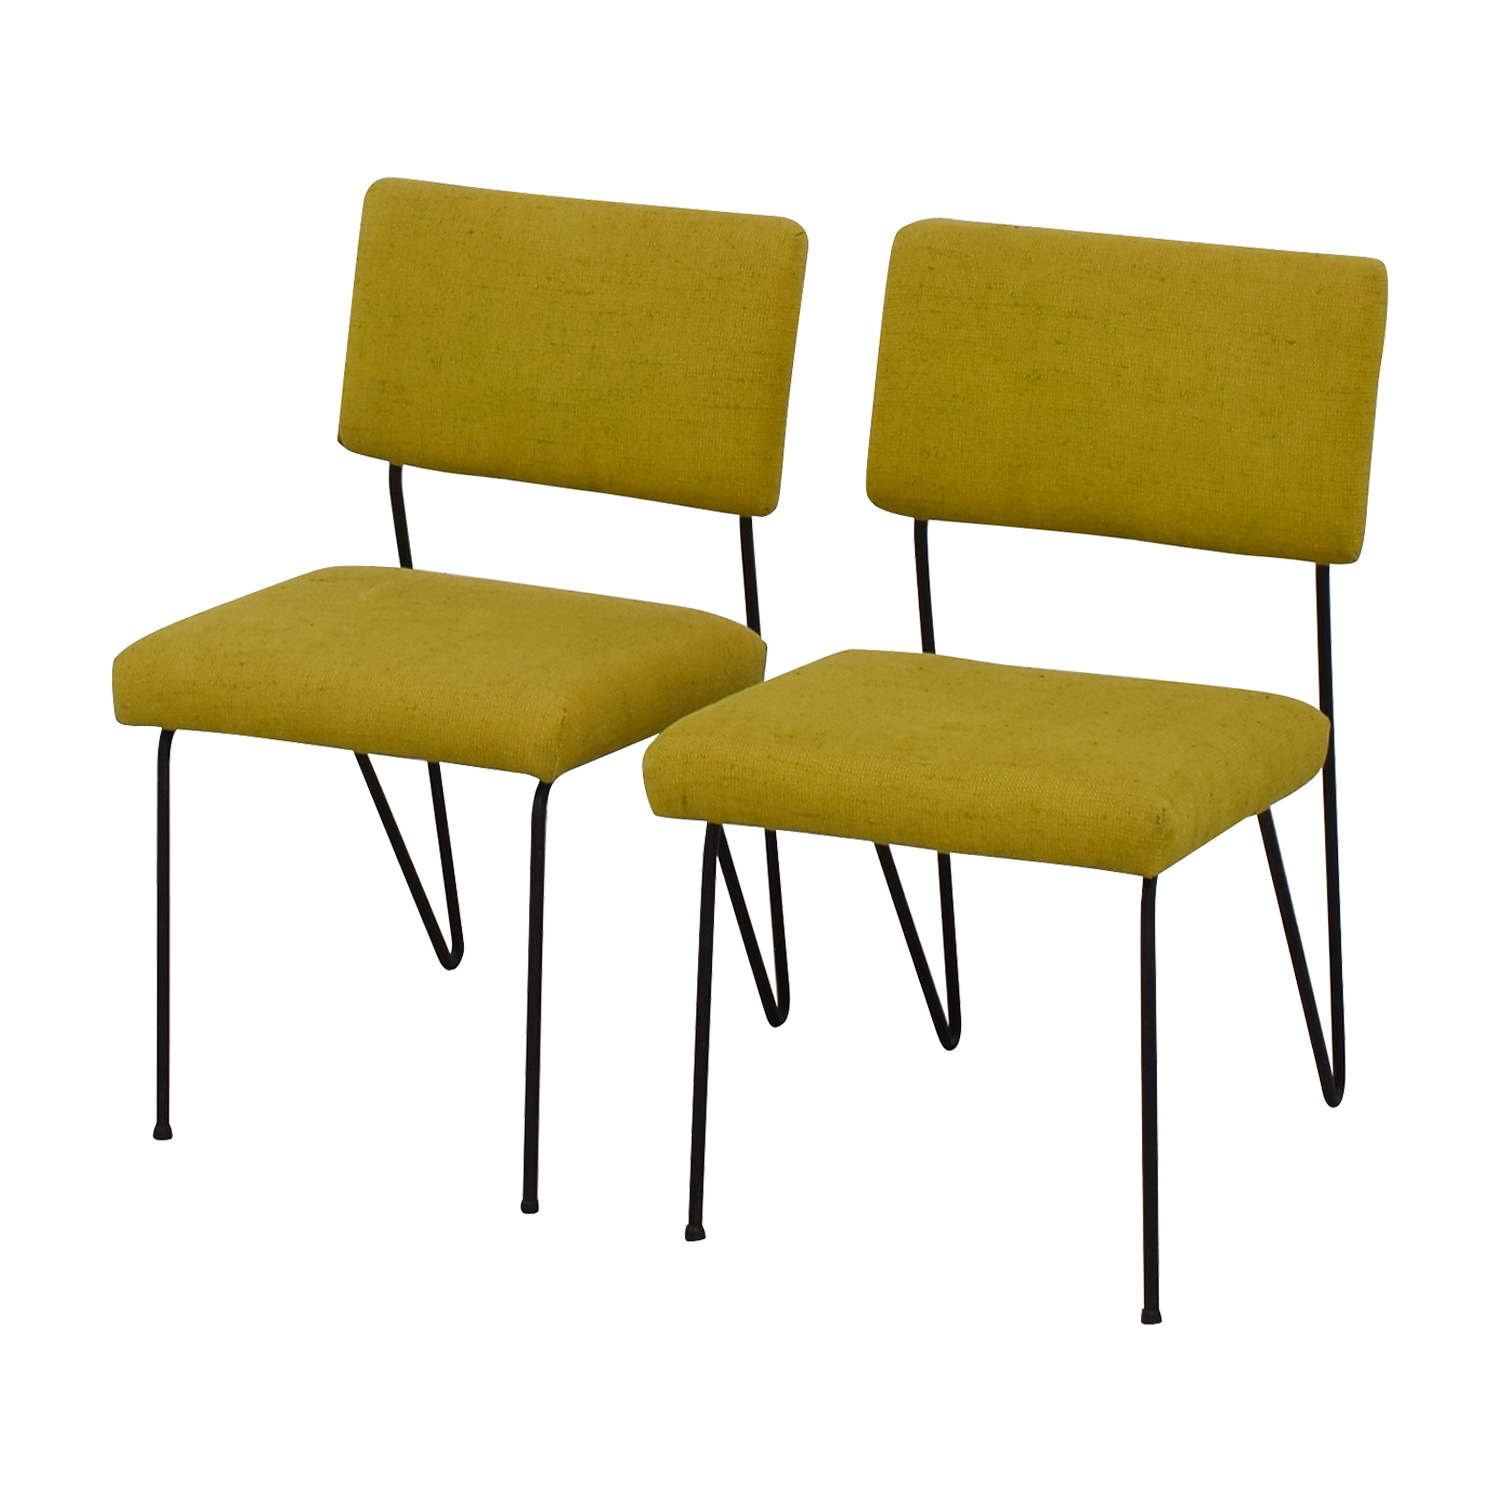 Furniture Masters Furniture Masters Green Fabric and Metal Chairs on sale